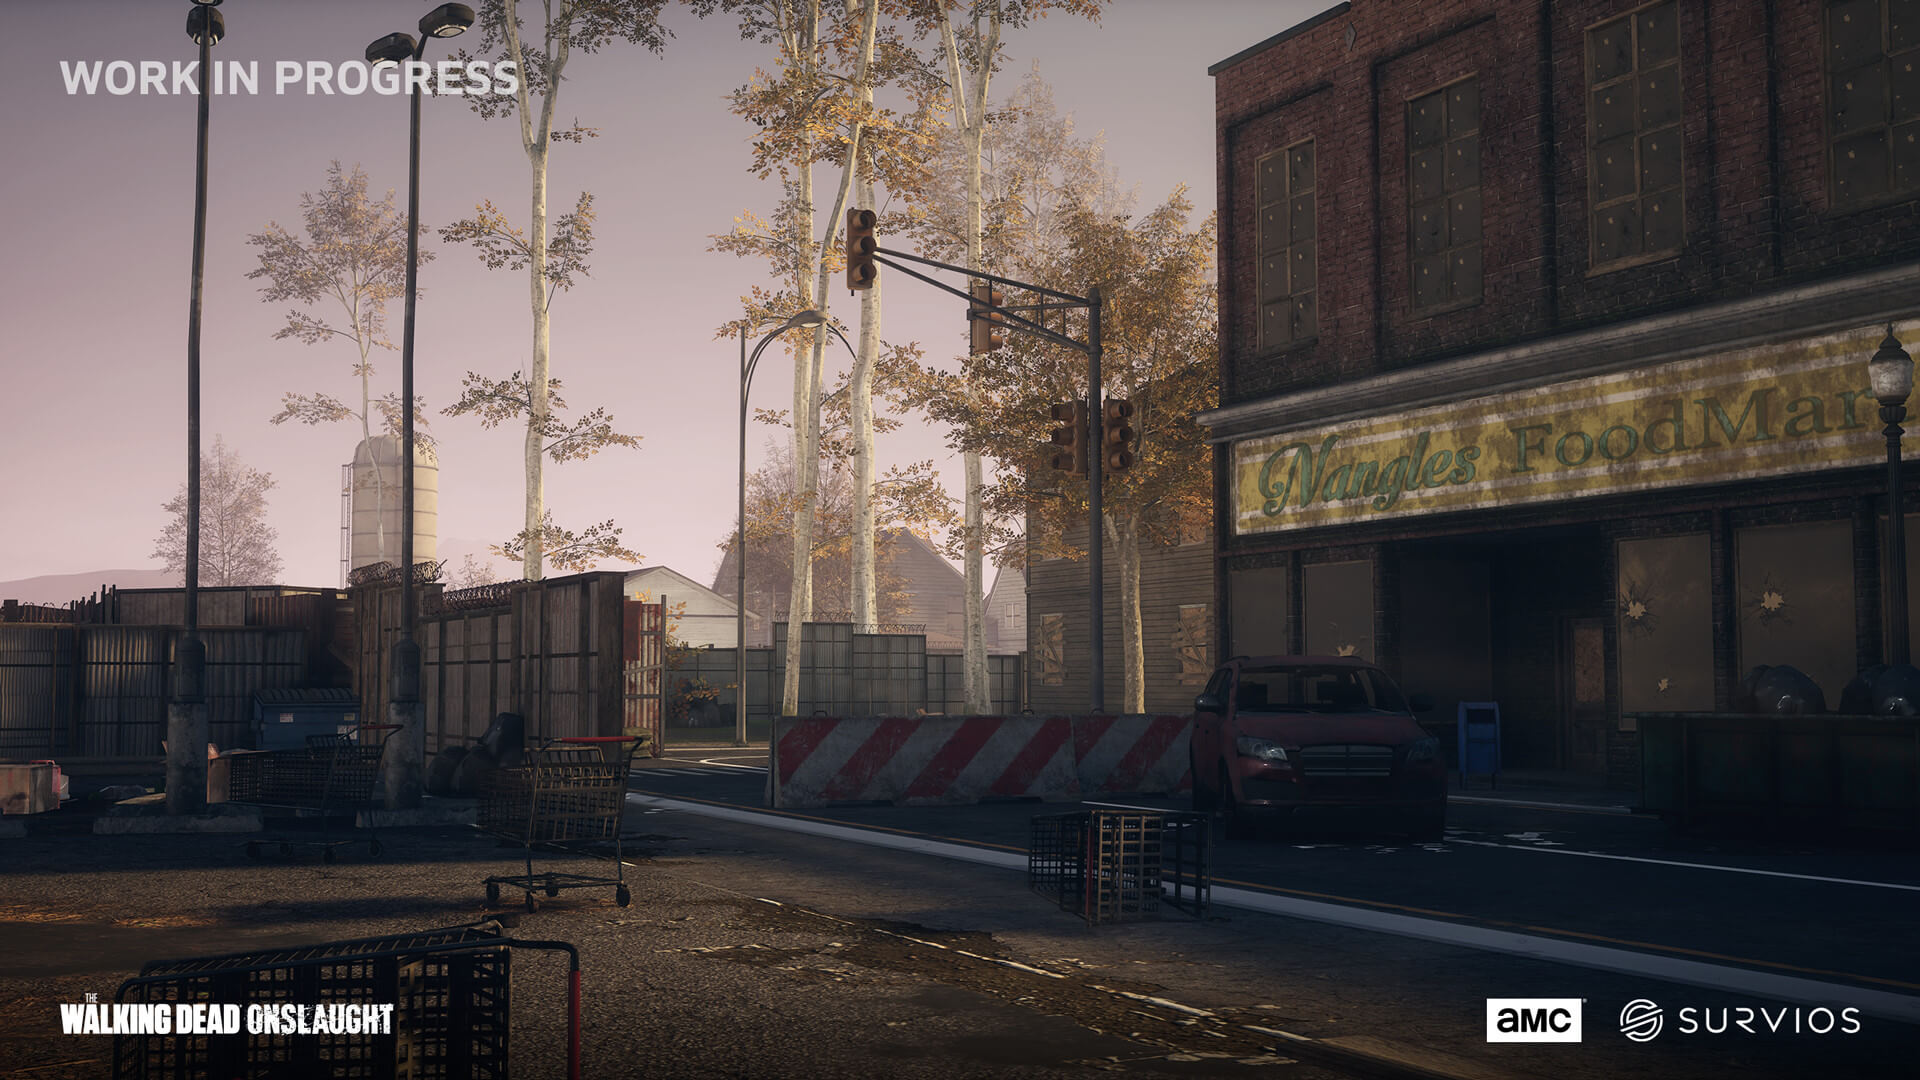 The Walking Dead Onslaught is a brand new official VR game based on AMC's The Walking Dead